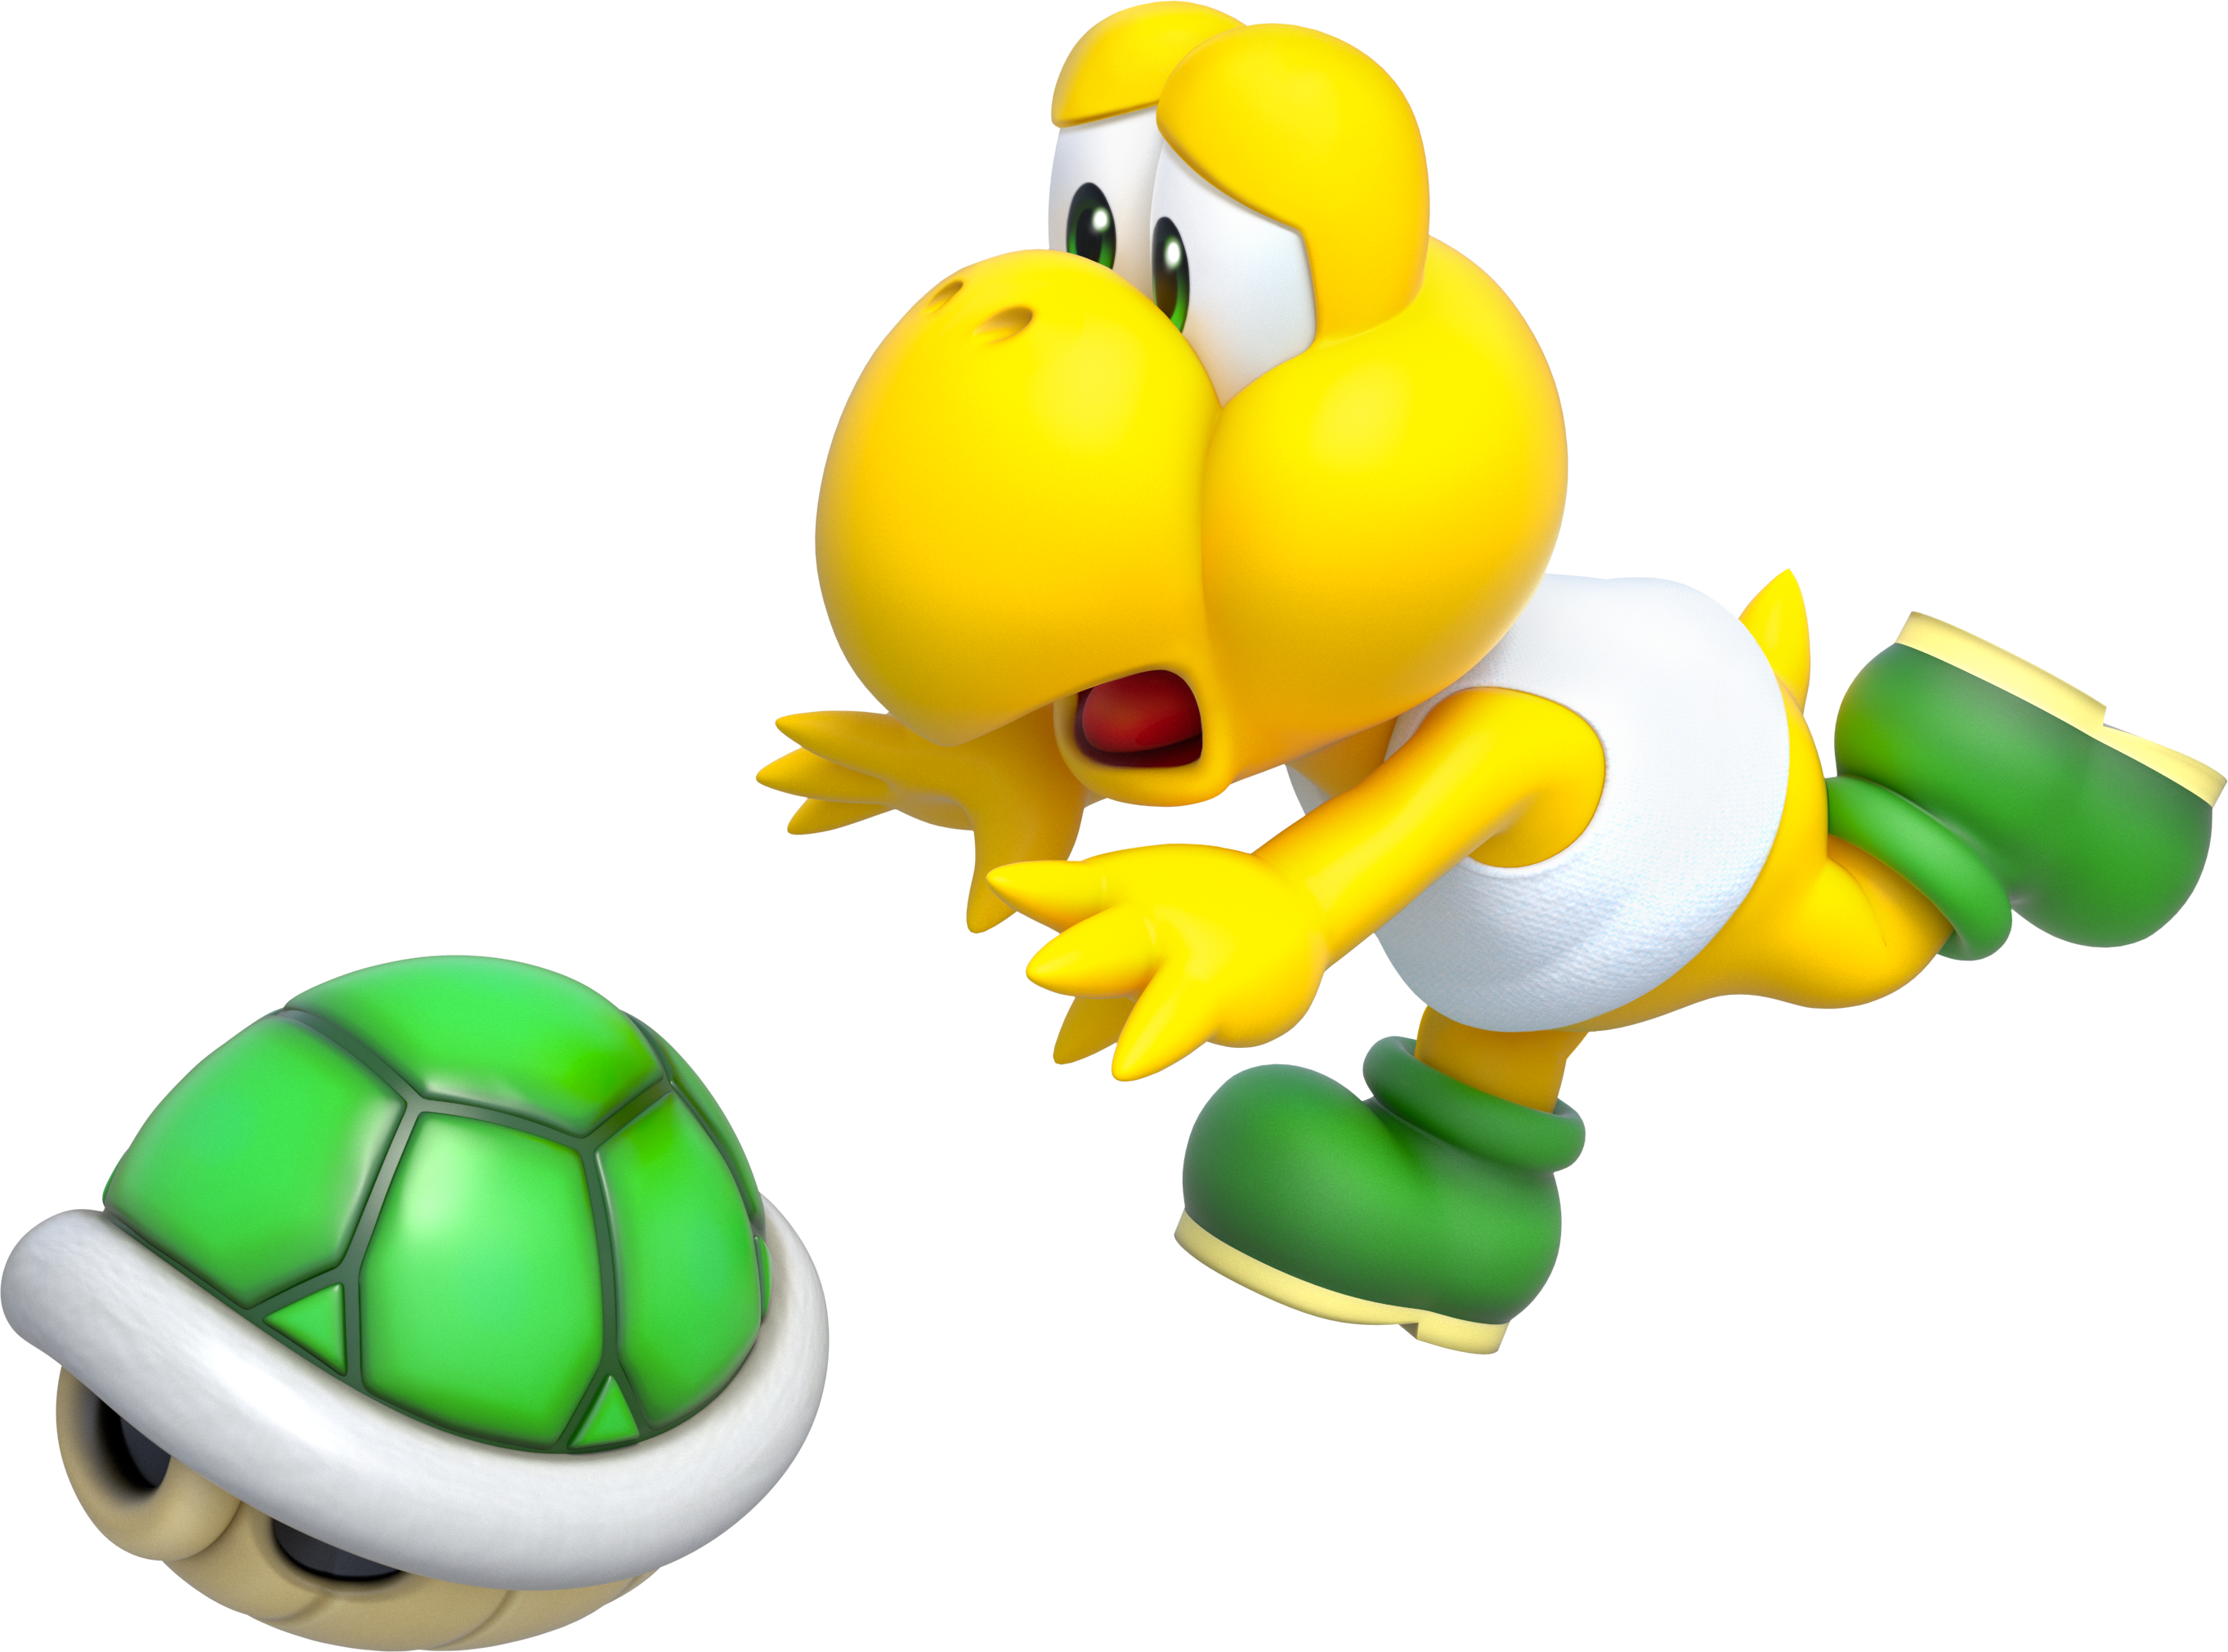 Shell clipart animated. Image koopa troopa artwork